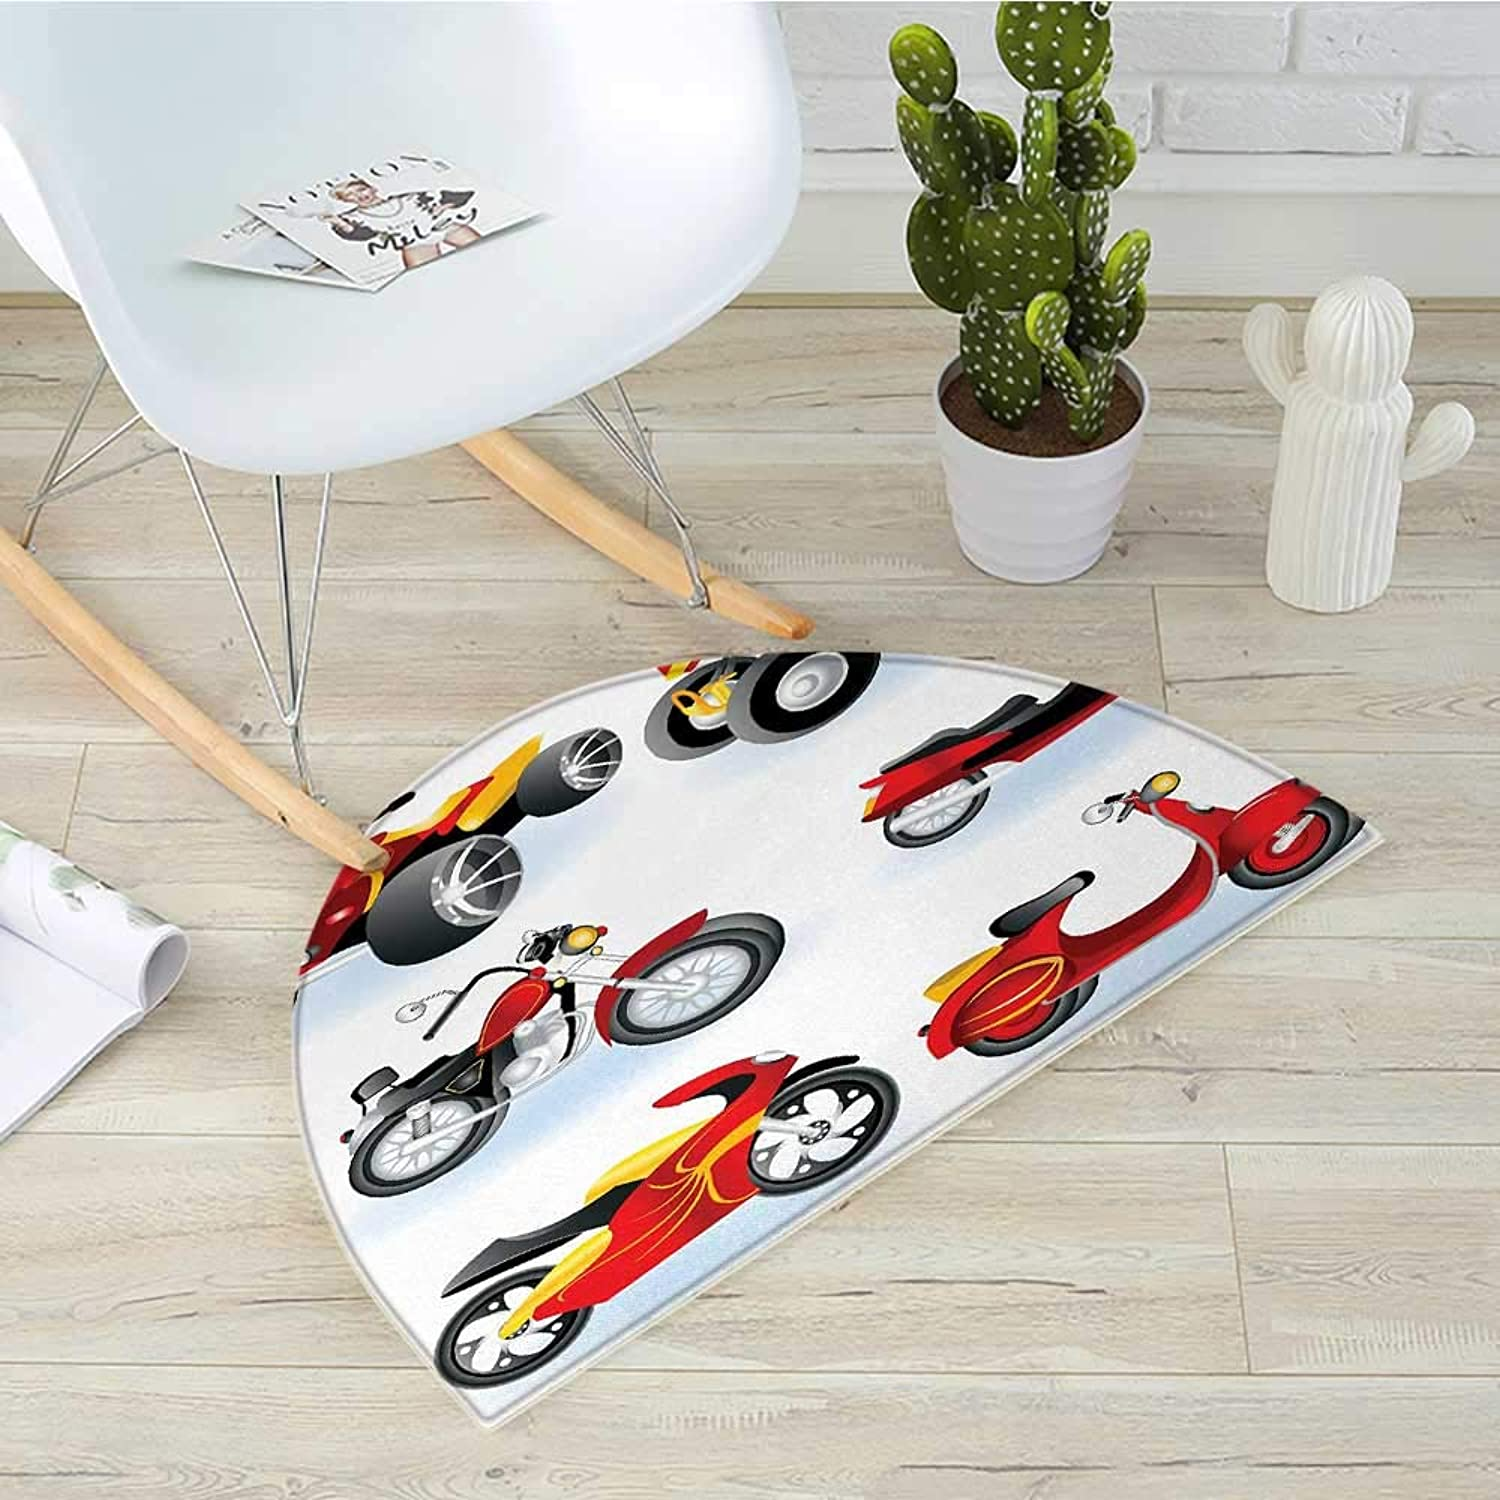 Motorcycle Semicircle Doormat Motorcycle Icons Sportsman Competition Amusement Leisure Cartoon Illustration Halfmoon doormats H 39.3  xD 59  Black Yellow